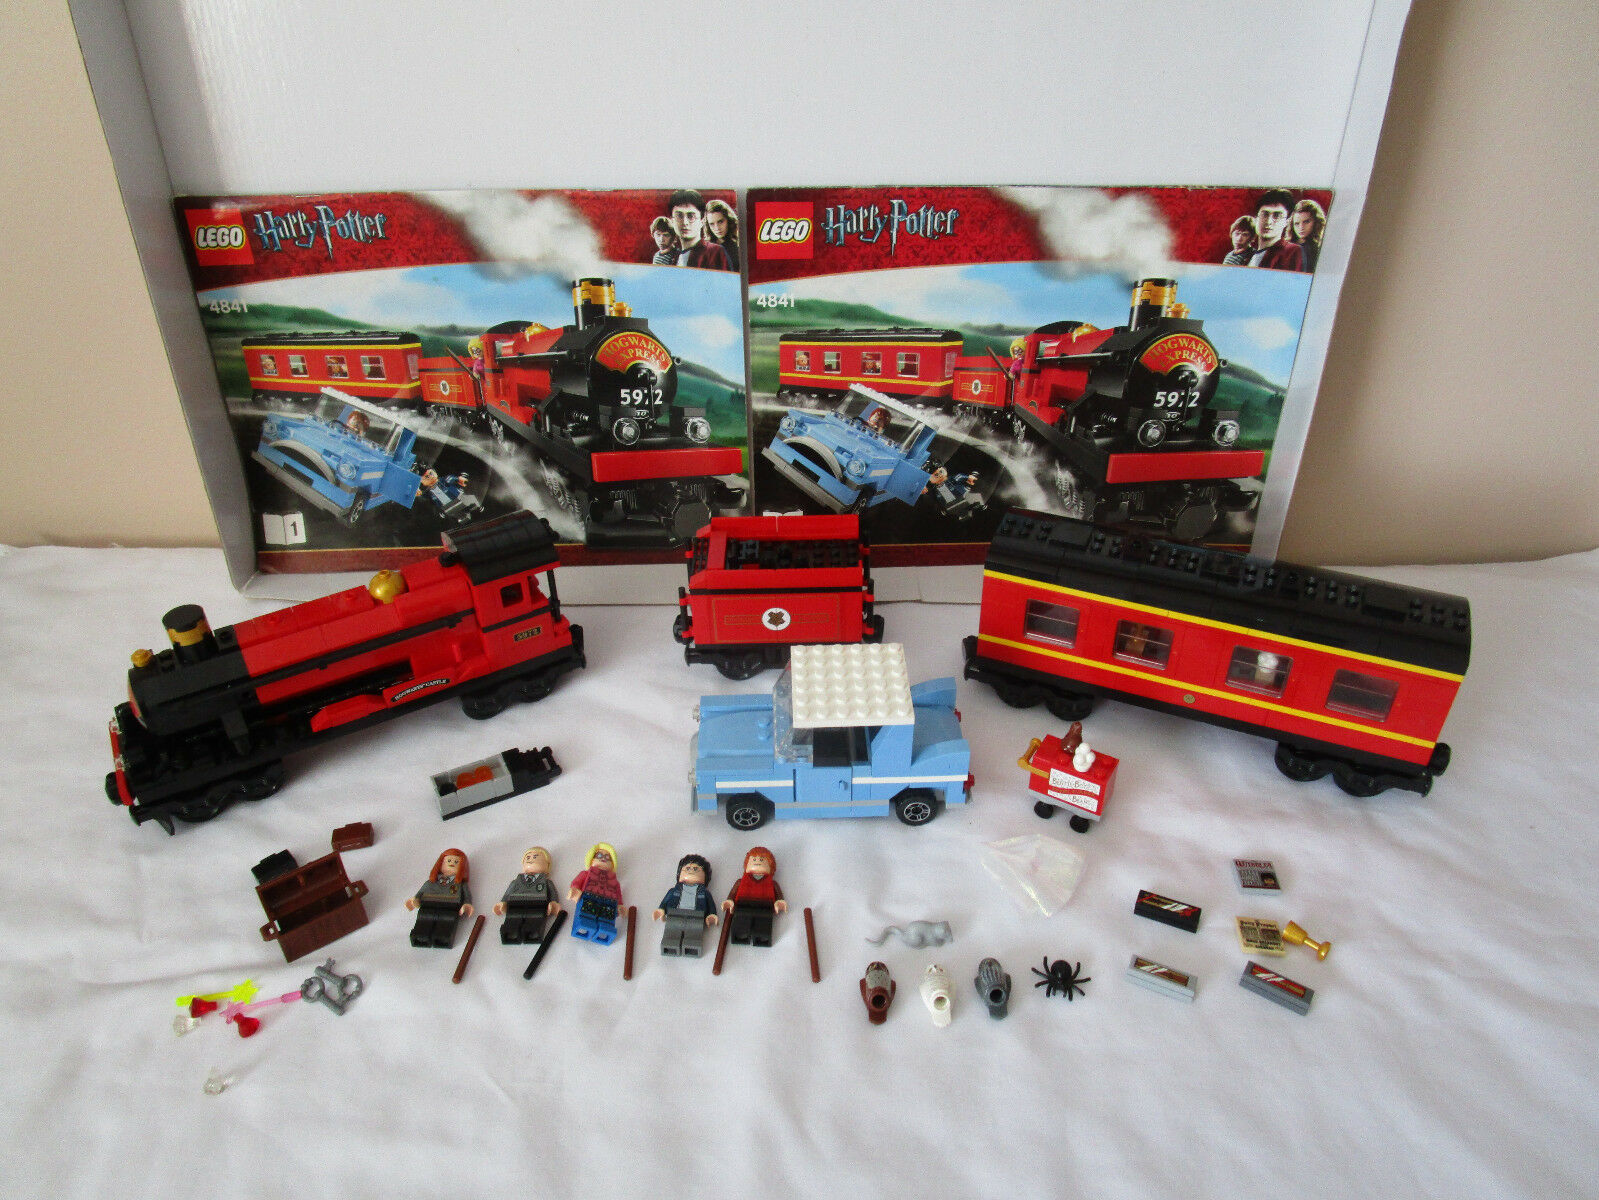 Lego Harry Potter HOGWARTS EXPRESS TRAIN SET 4841 COMPLETE SET NO BOX